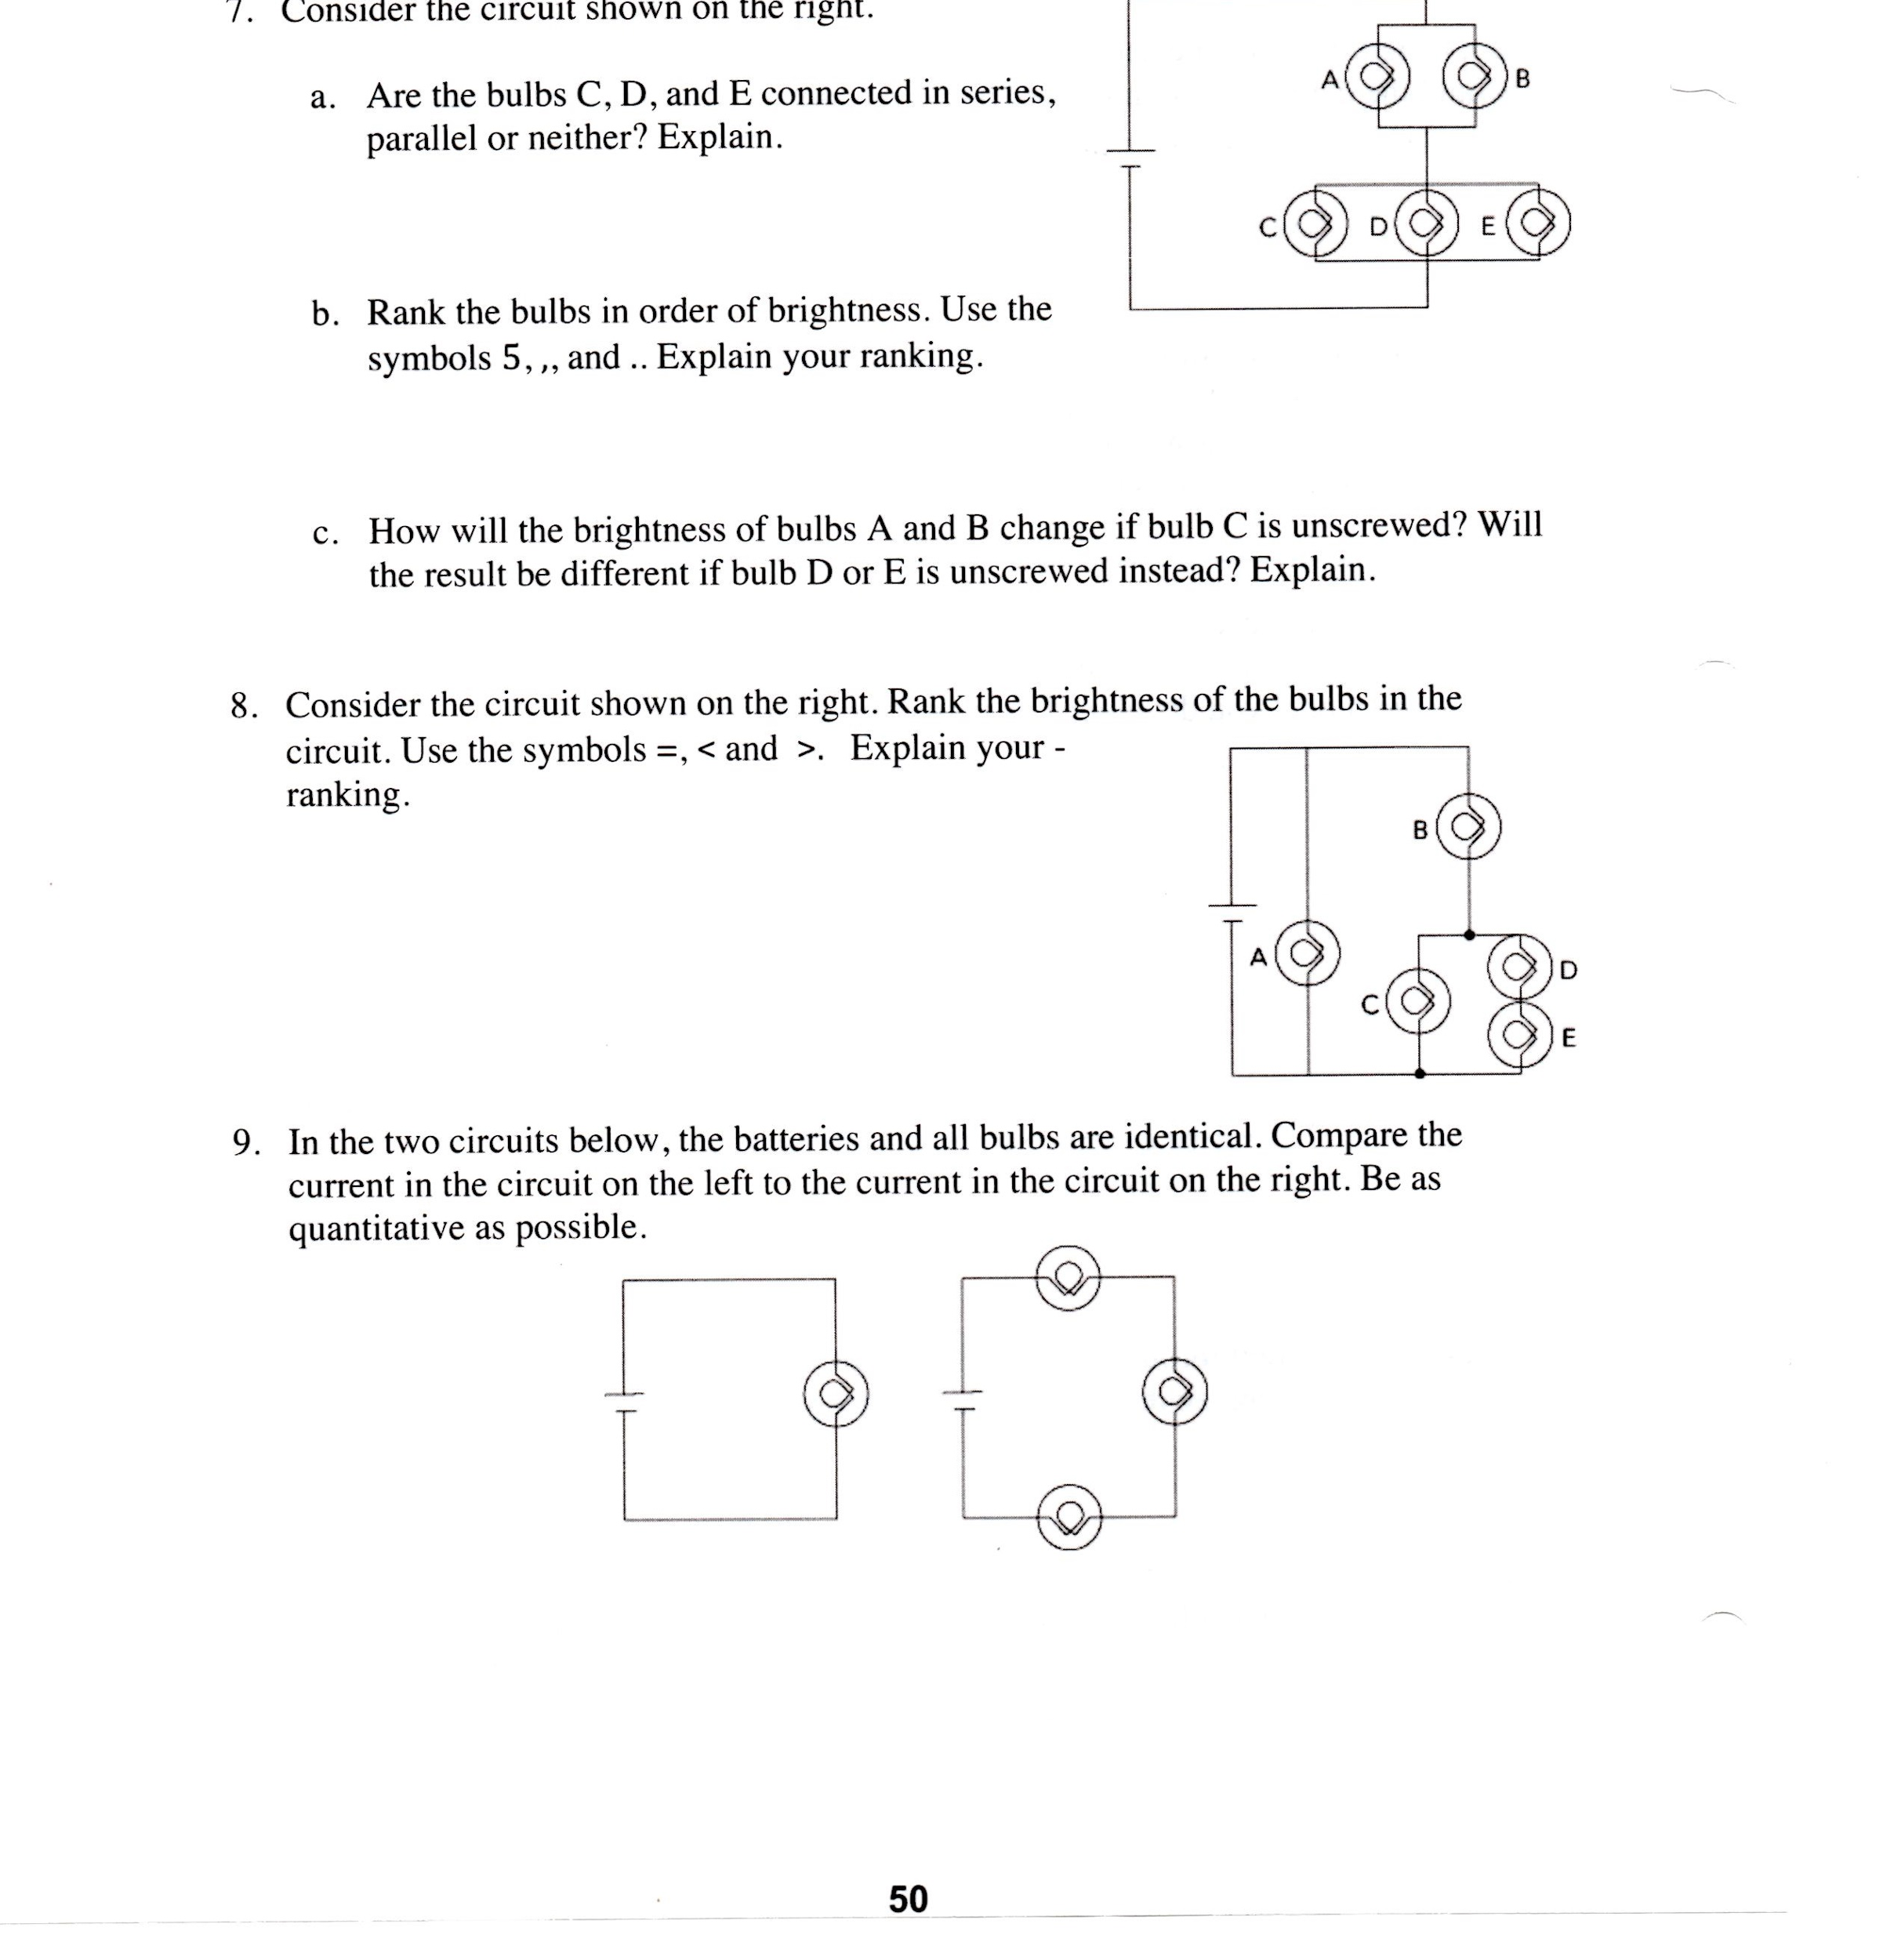 Solved: Consider The Circuit Shown On The Ngni. A. Are The ...